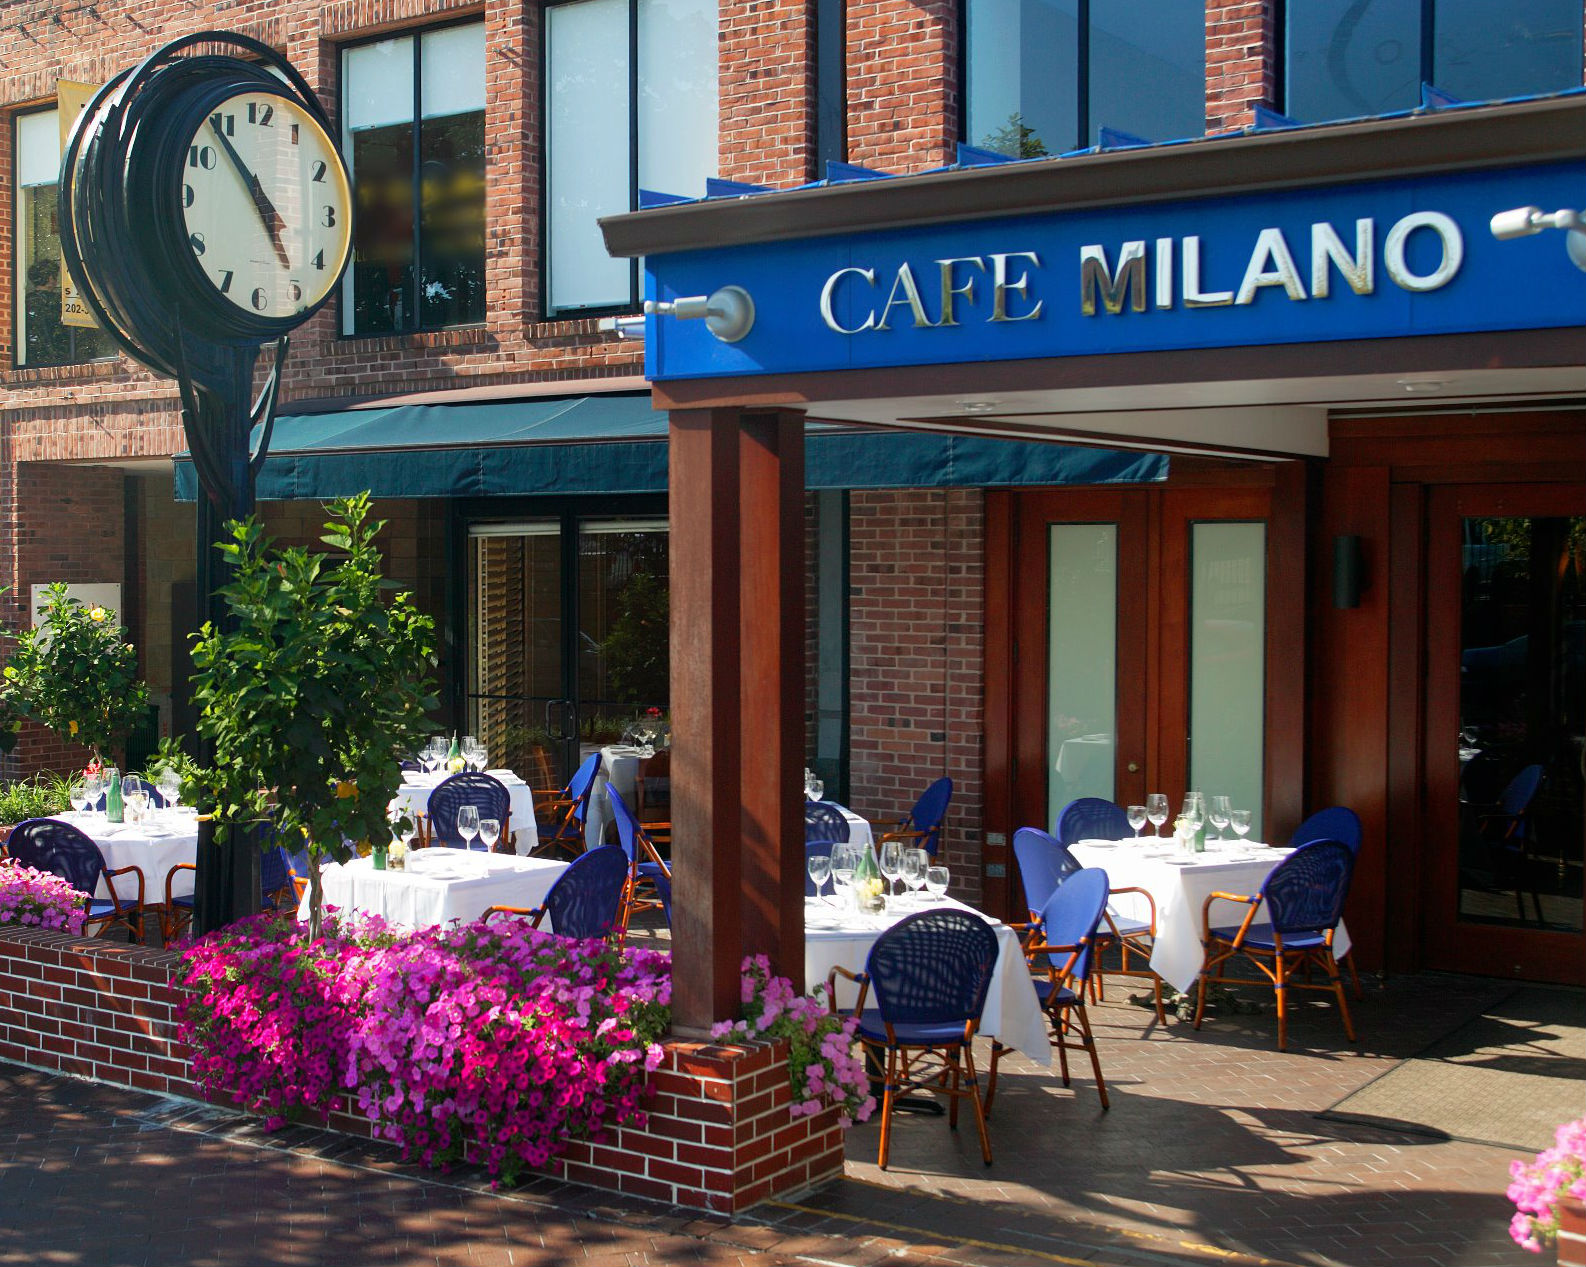 Cafe Milano photo